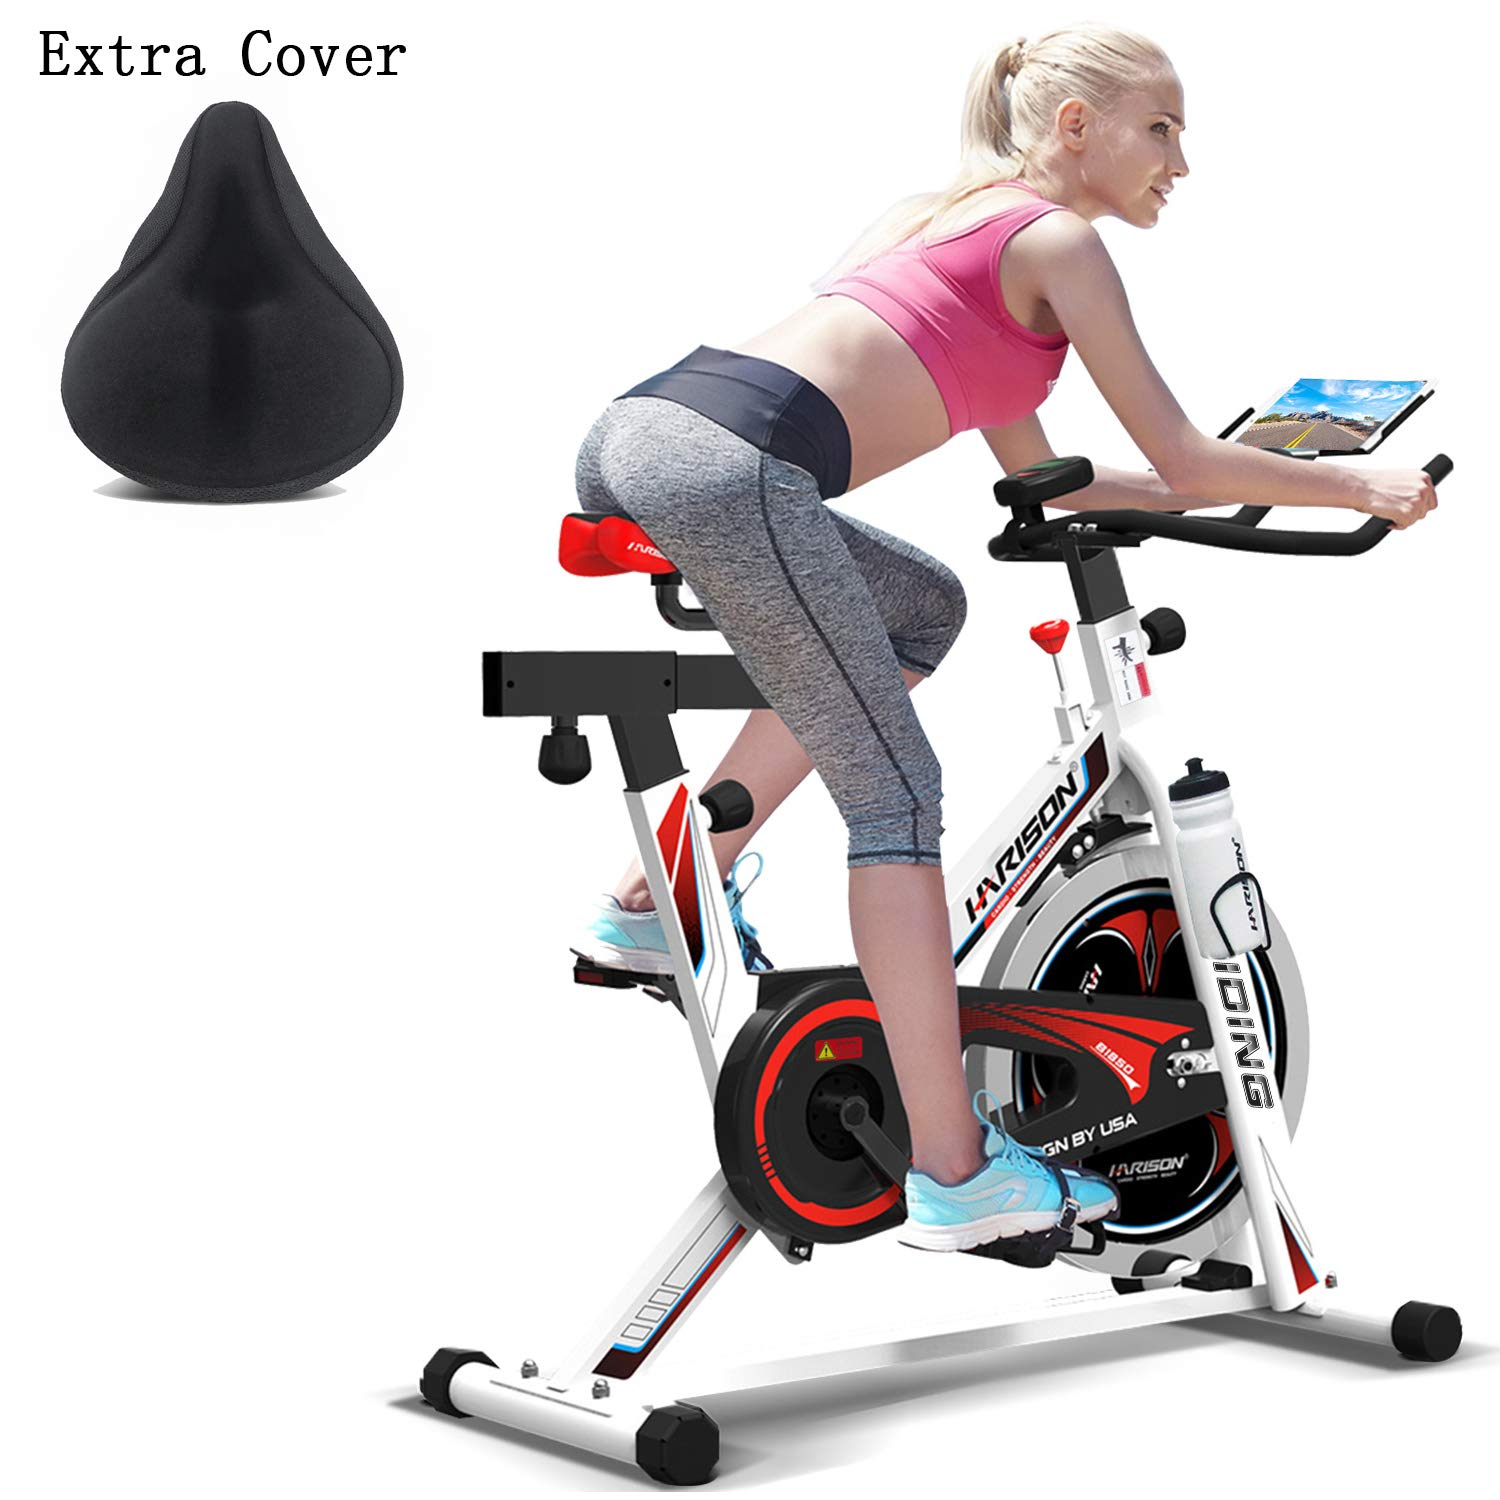 HARISON Pro Indoor Cycling Bike Belt Drive with iPad Holder, Stationary Exercise Bike for Home use B1850 (with cusion) by HARISON